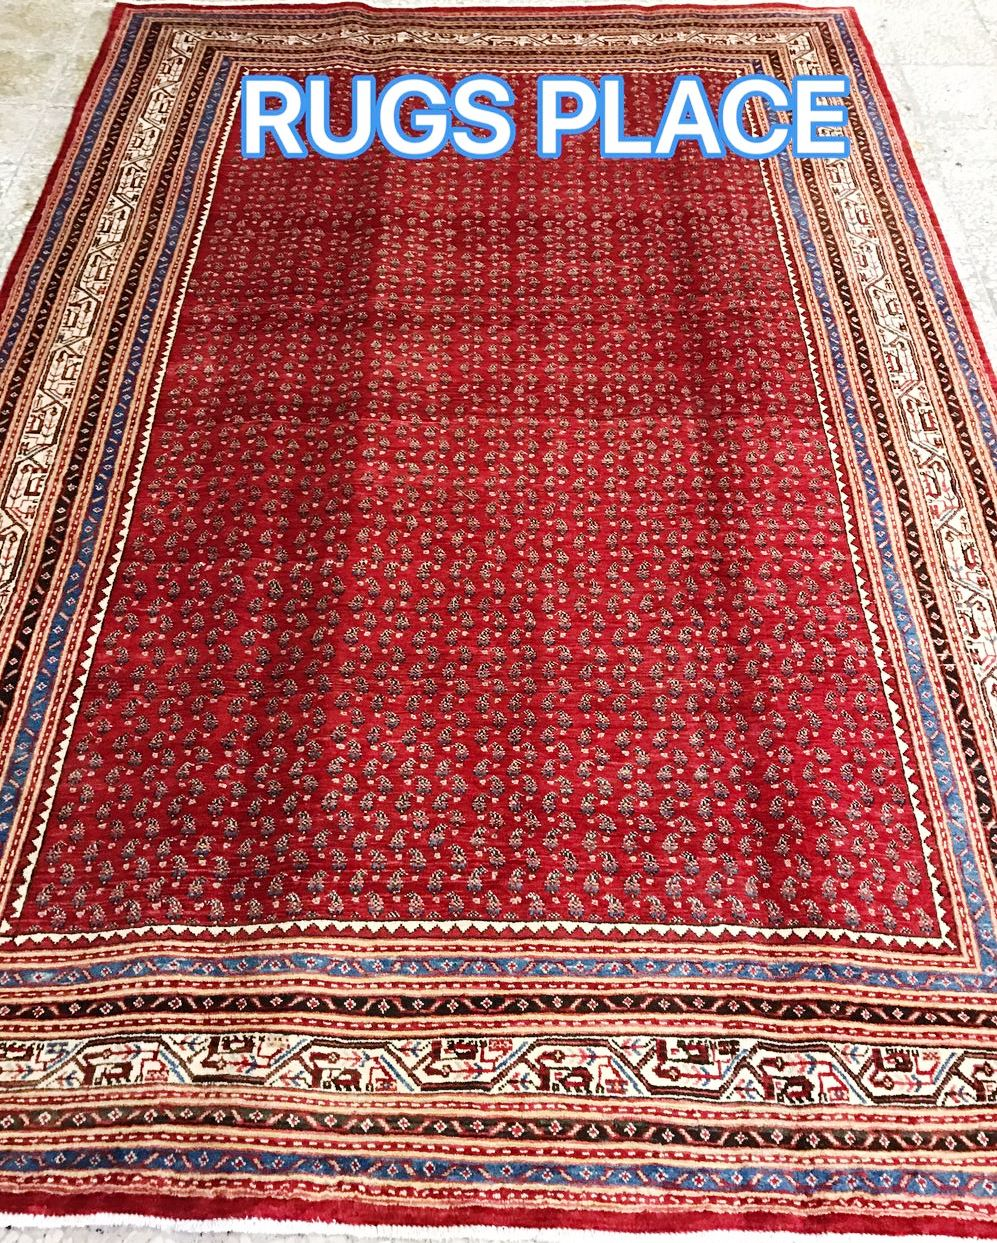 mahal persian rug11 5 x 7 7 ft 348 x 231 cm rugs place. Black Bedroom Furniture Sets. Home Design Ideas